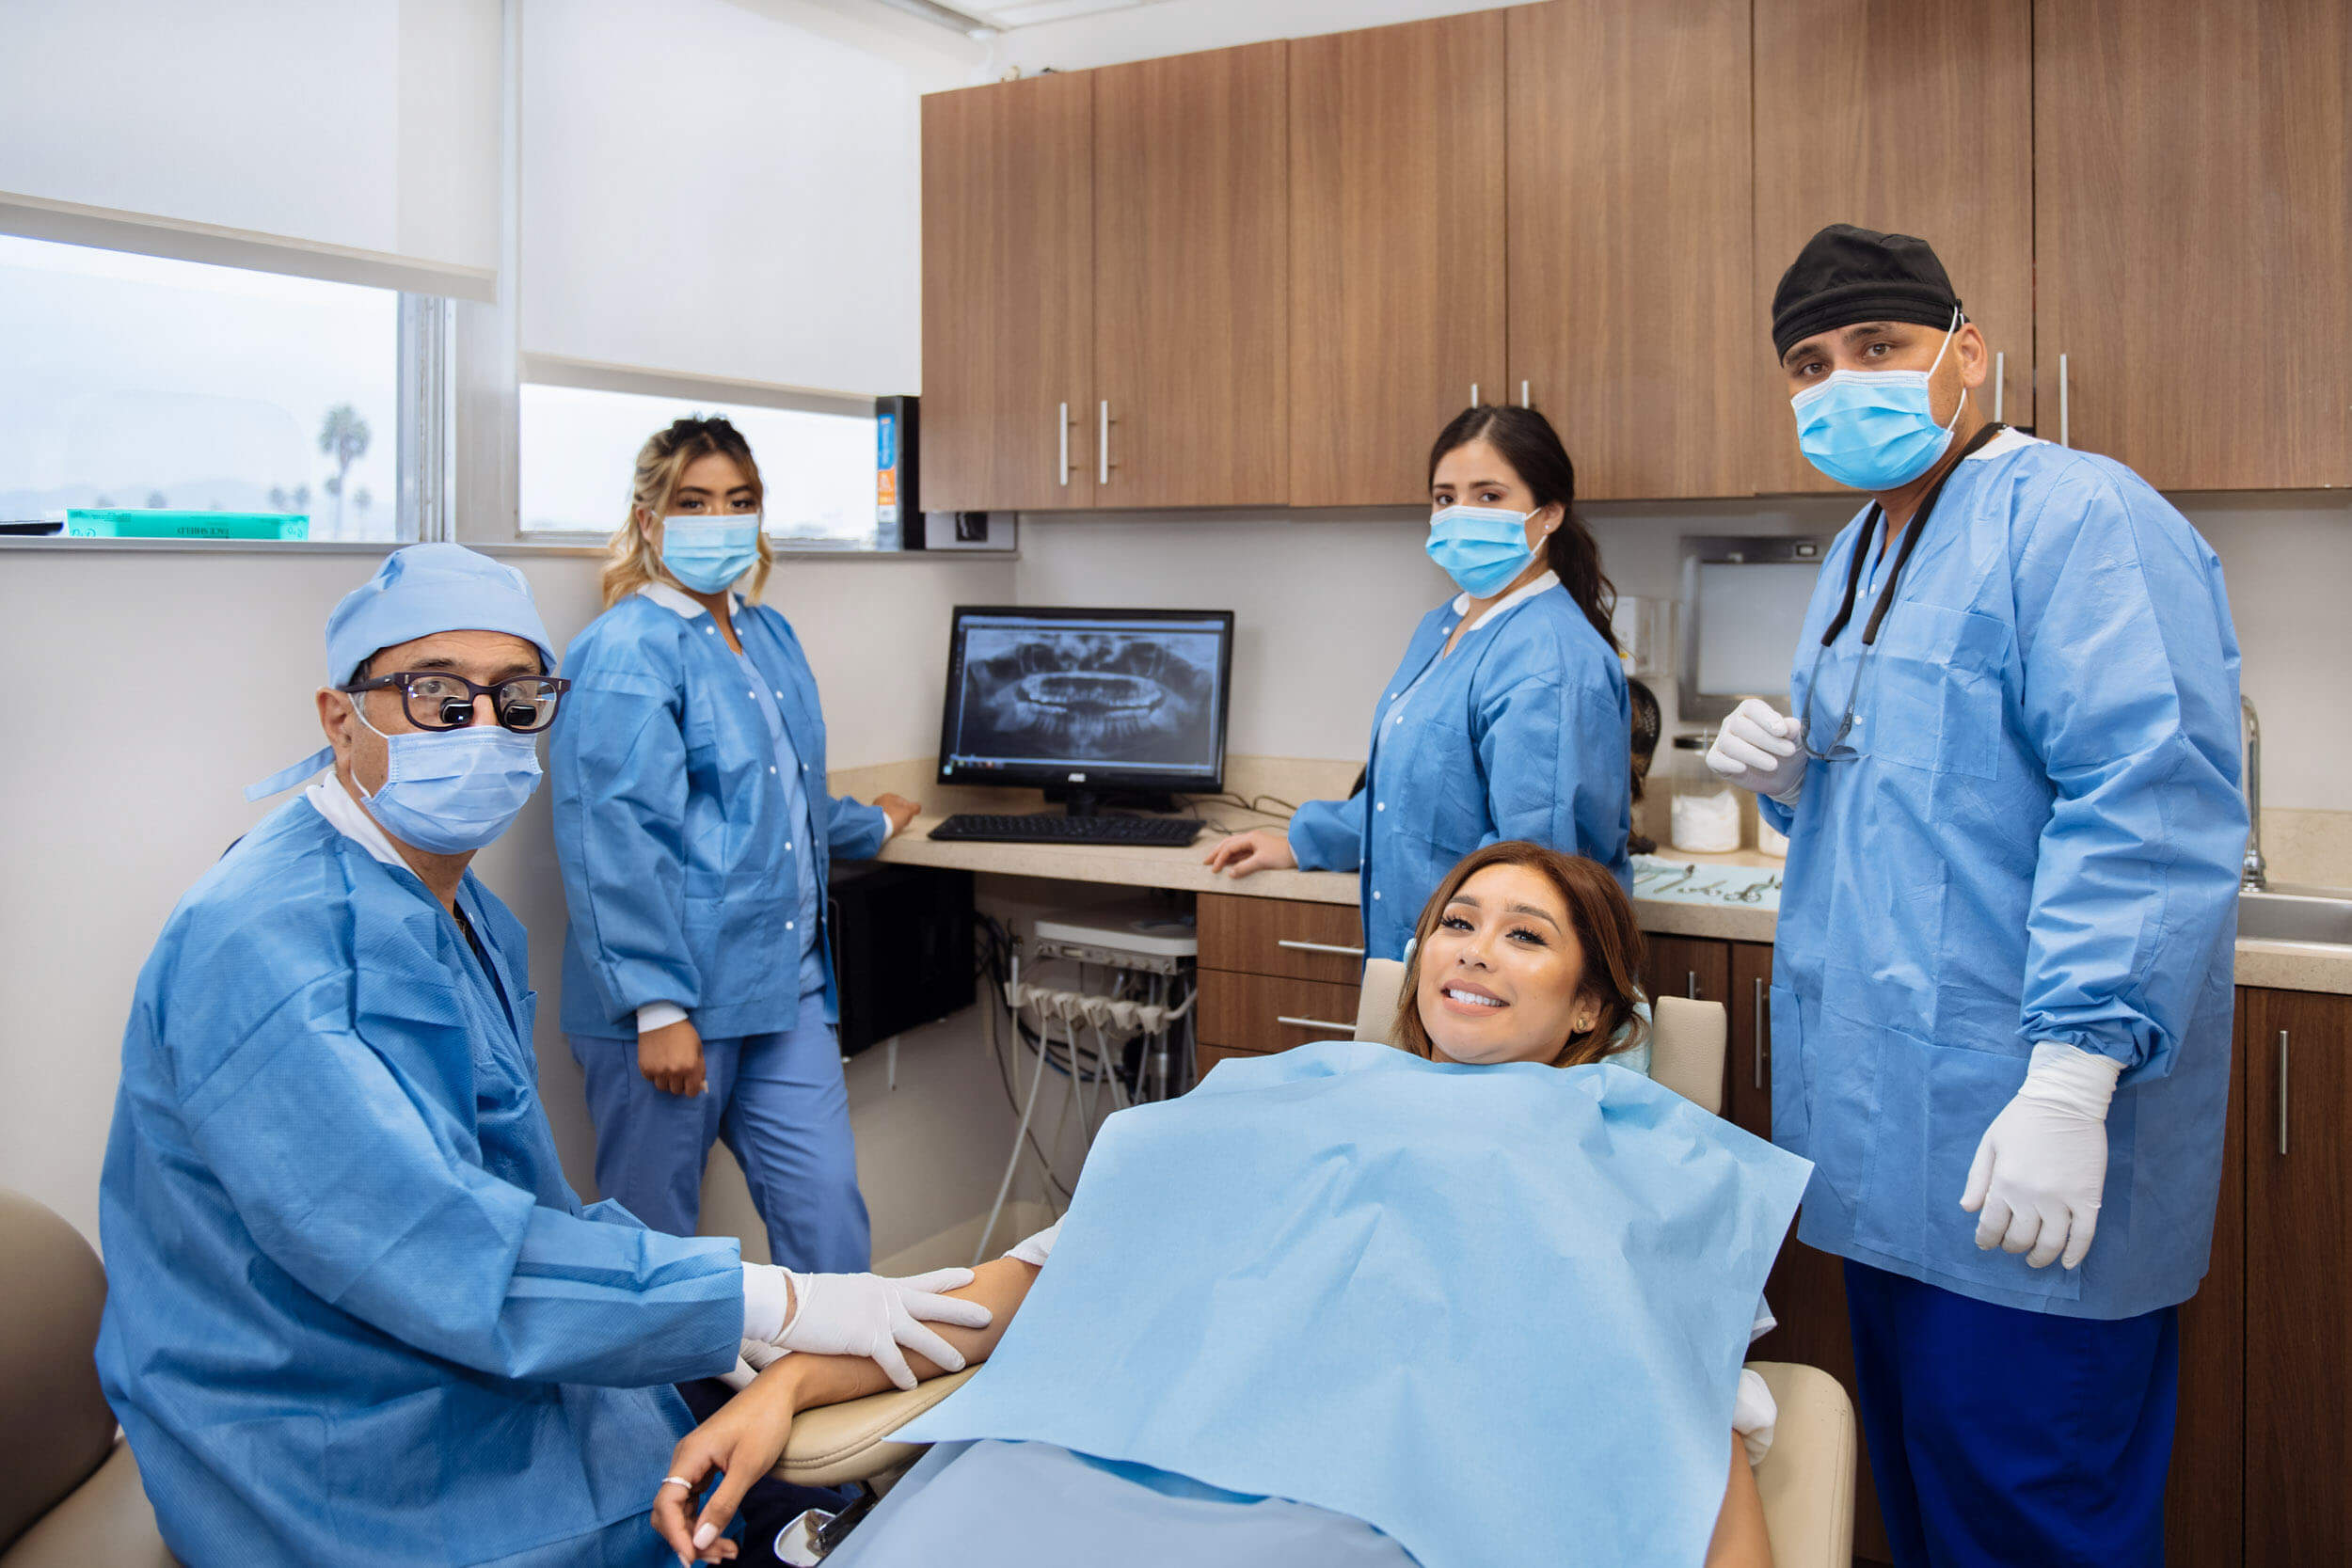 Staff with patient in operating room before surgery